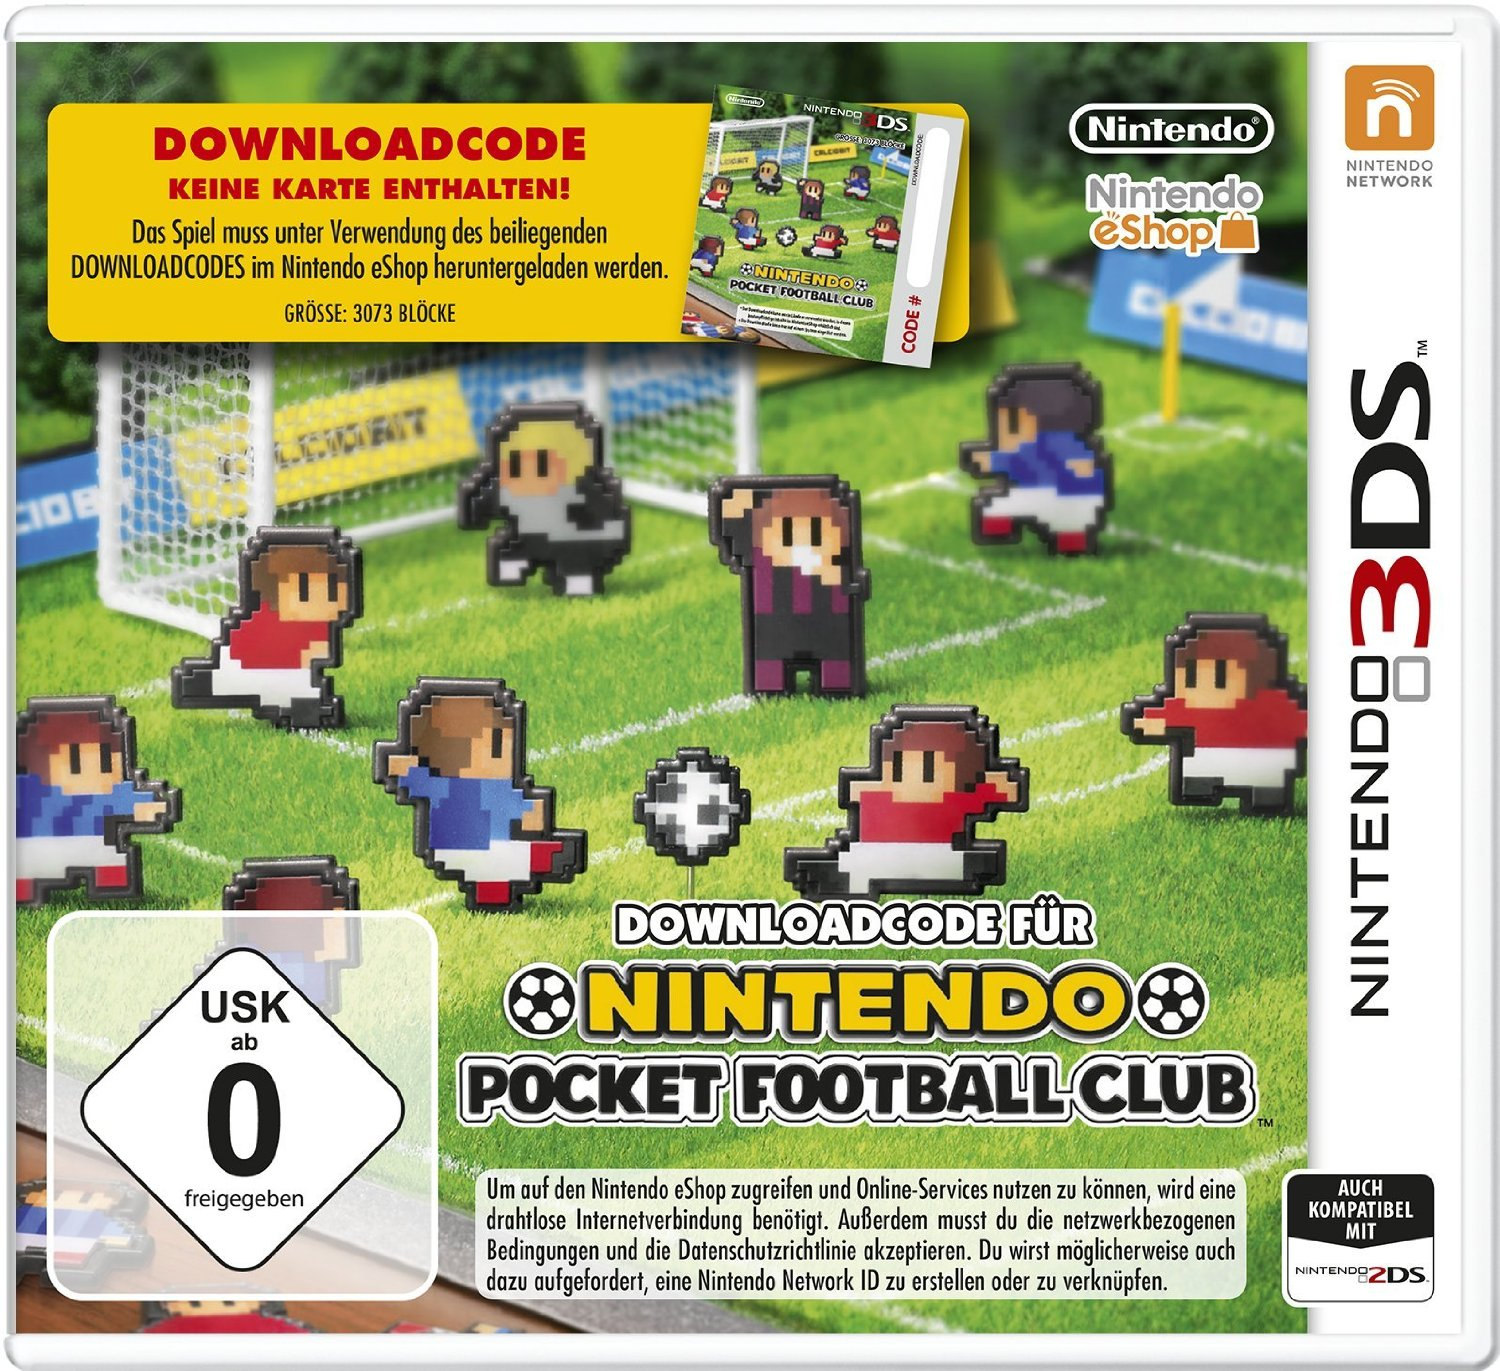 Nintendo_Pocket_Football_Club_(GER)